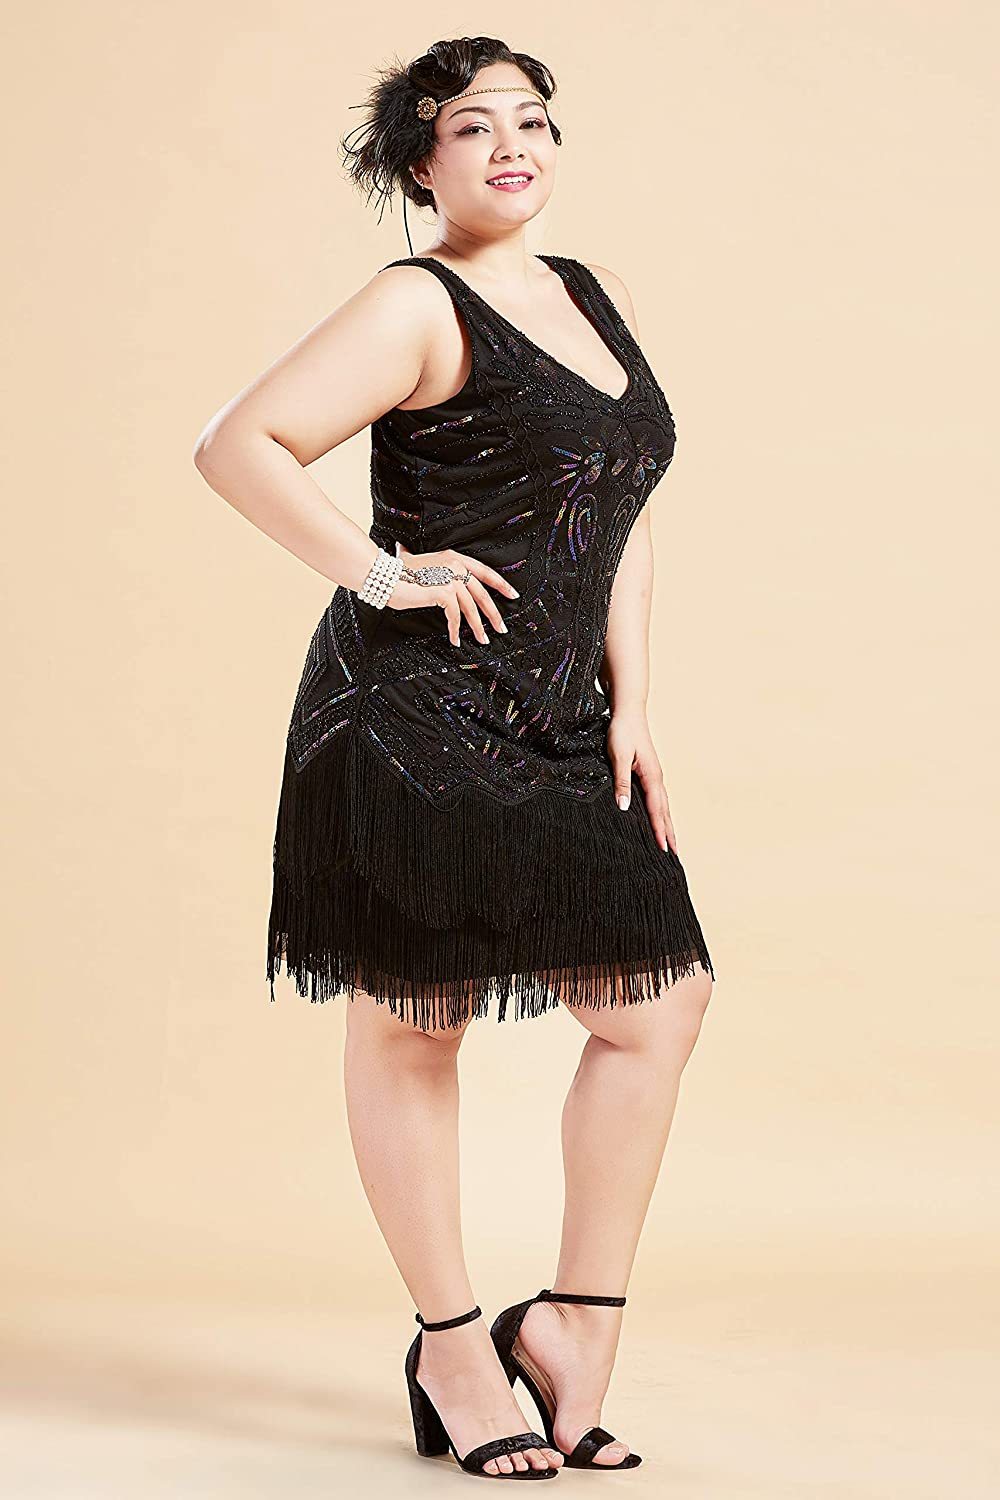 Black Flapper Dresses, 1920s Black Dresses BABEYOND Womens Plus Size Flapper Dresses 1920s V Neck Beaded Fringed Great Gatsby Dress $40.99 AT vintagedancer.com